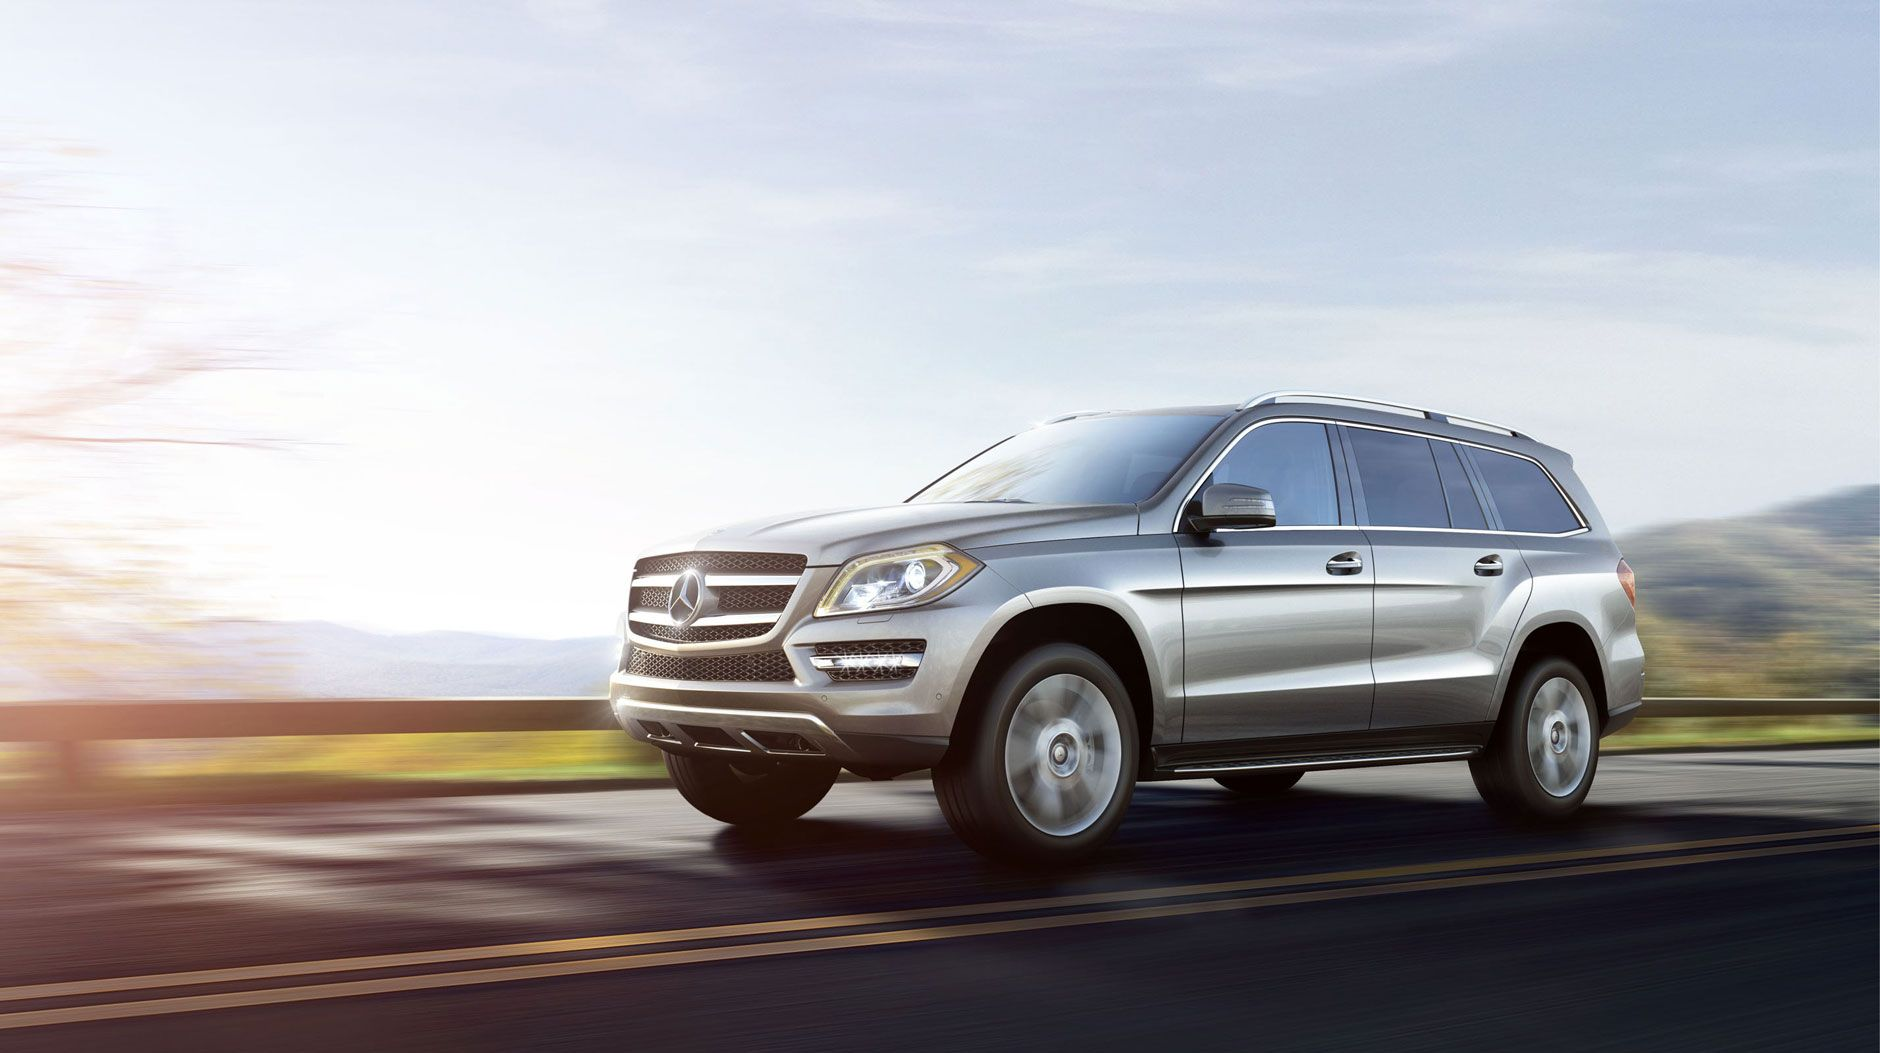 Mercedes Benz Of Hoffman Estates Is Proud To Offer Drivers The 2016 Mercedes  Benz GL Class. Visit Our Showroom To Test Drive The Newest GL Class!